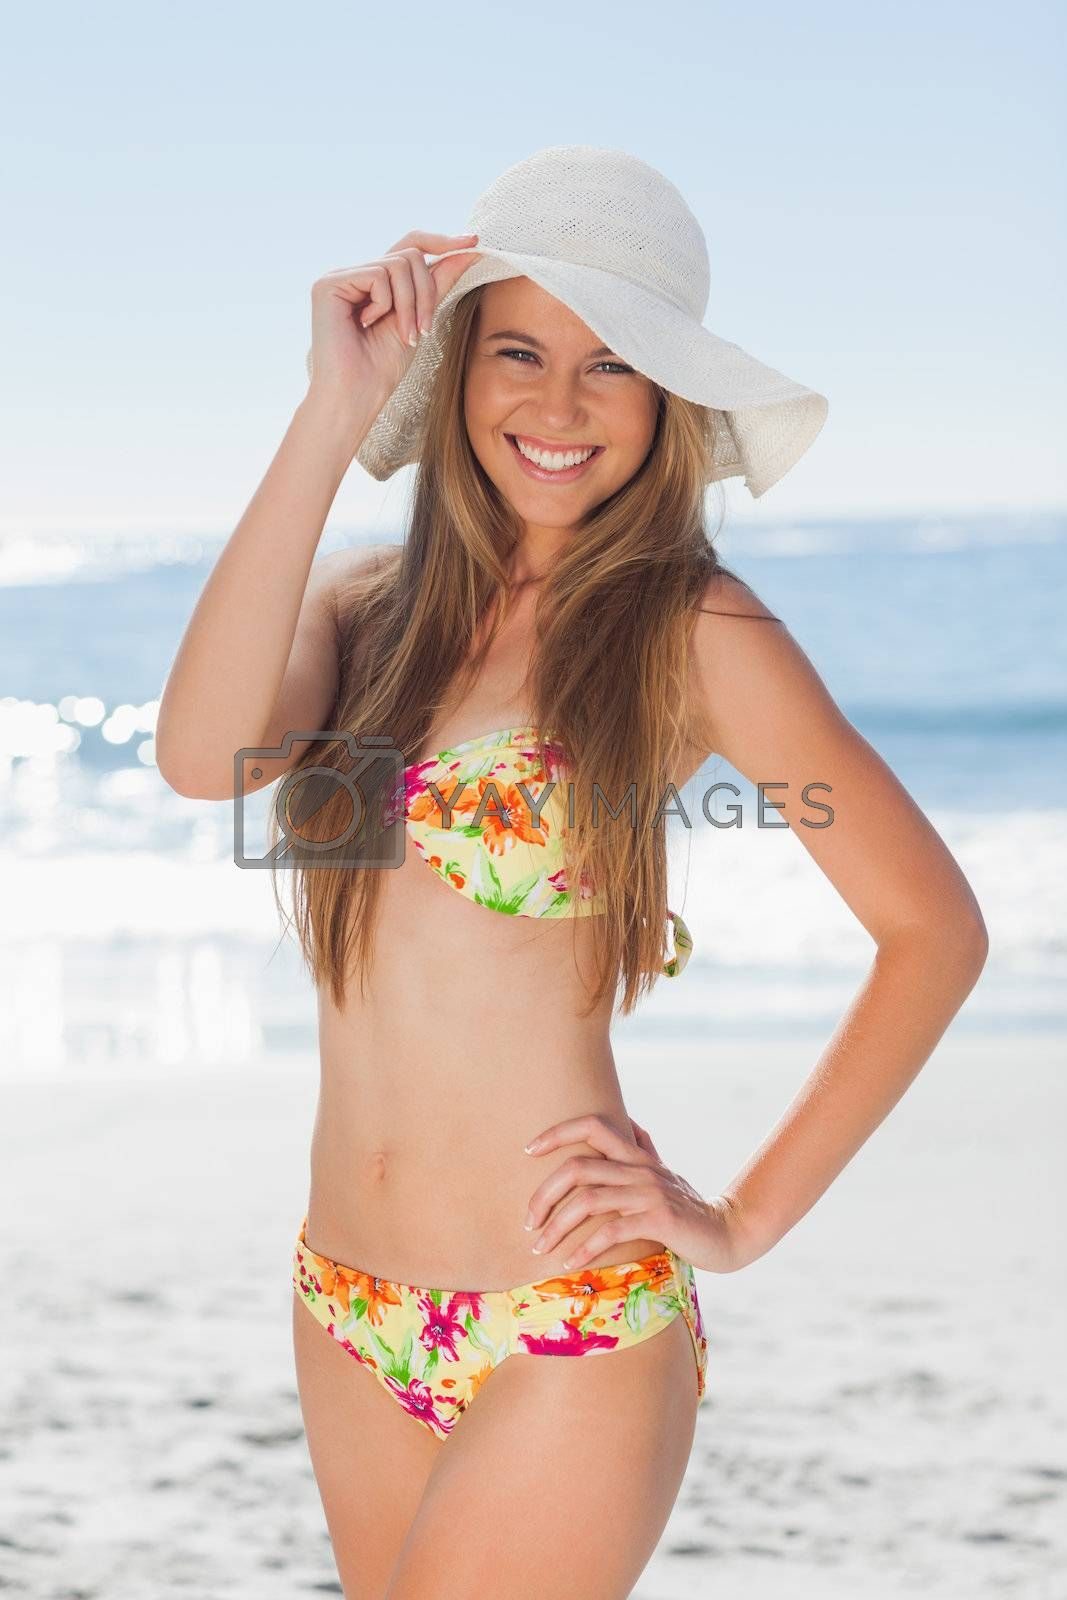 Young smiling woman in bikini standing with her hand on her hip by Wavebreakmedia